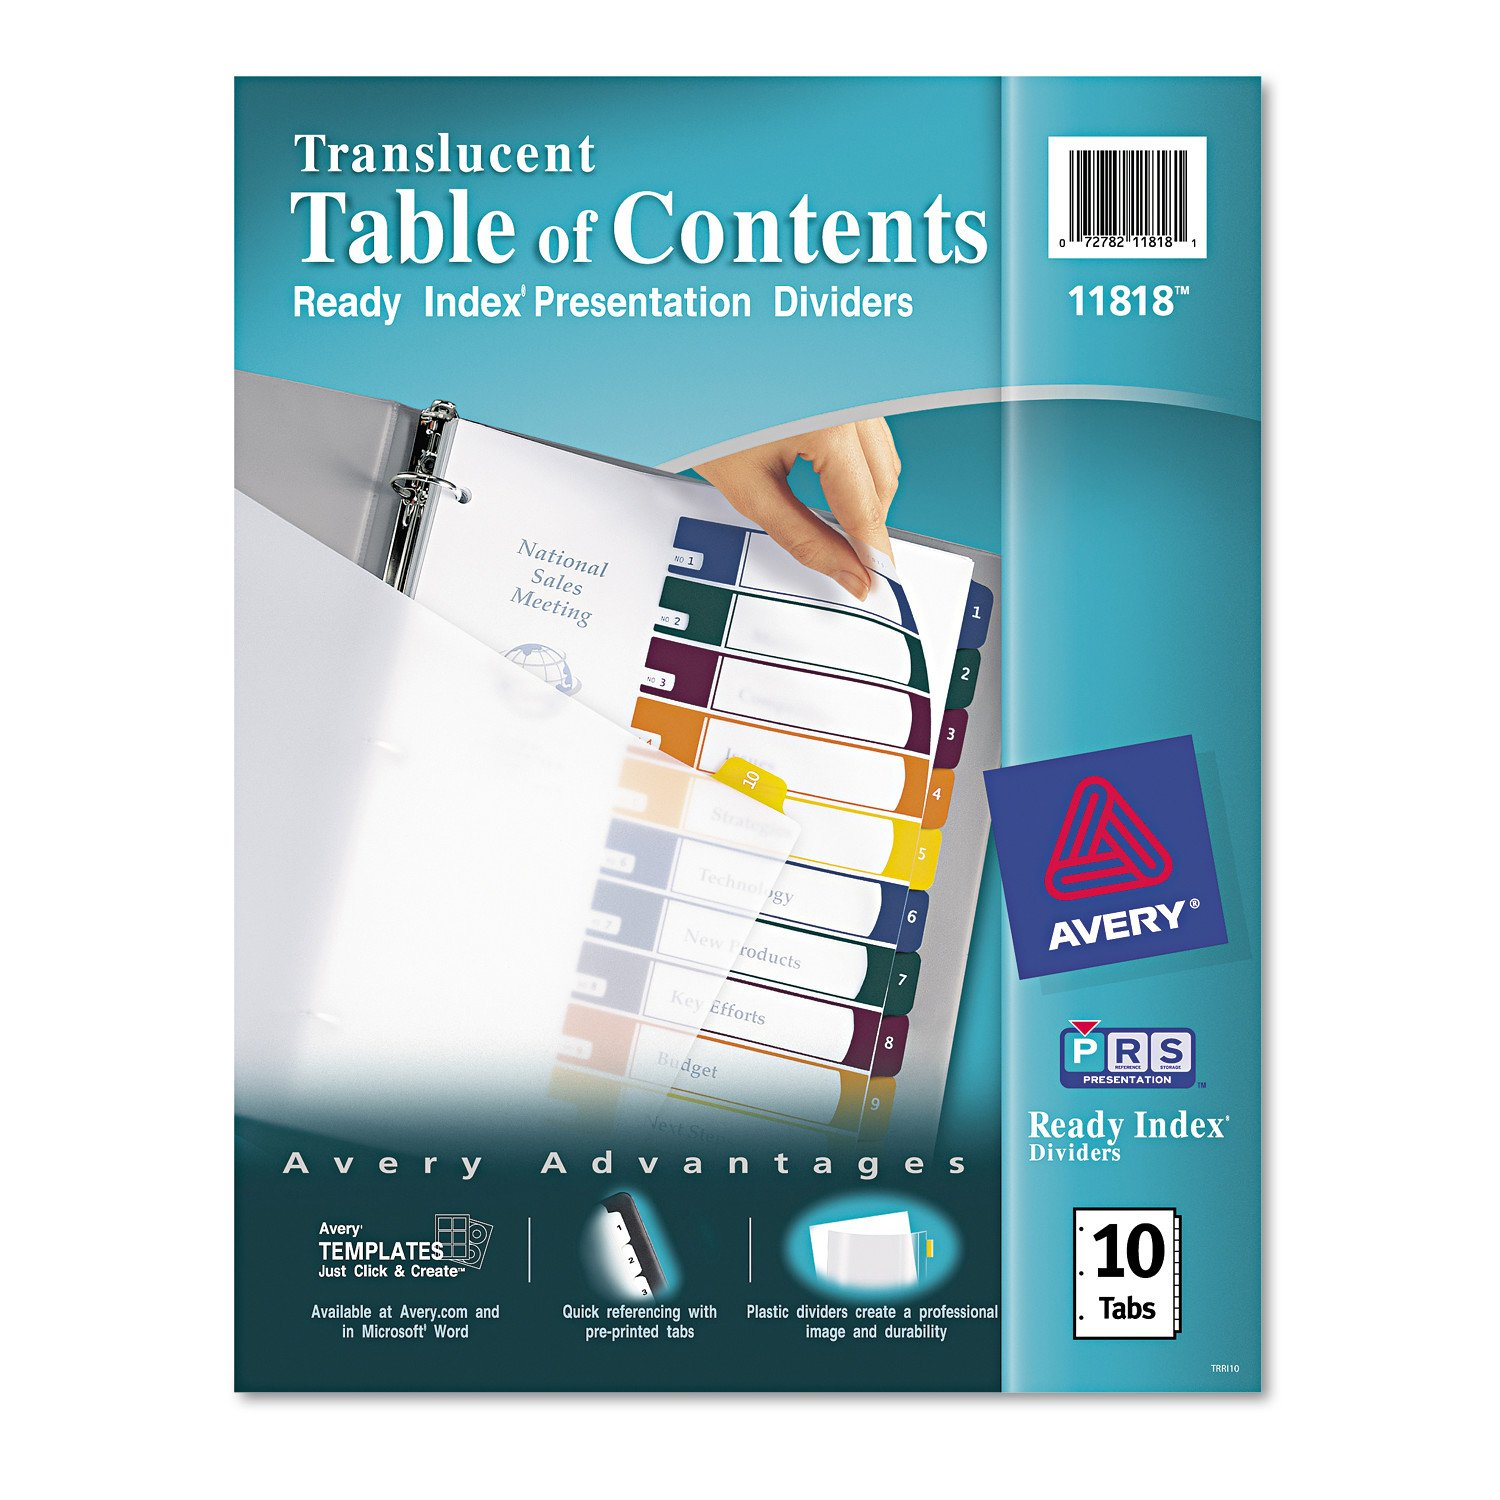 Avery  Ready Index  Translucent Table Of Contents Dividers, 10 Tab Set (11818) by Avery